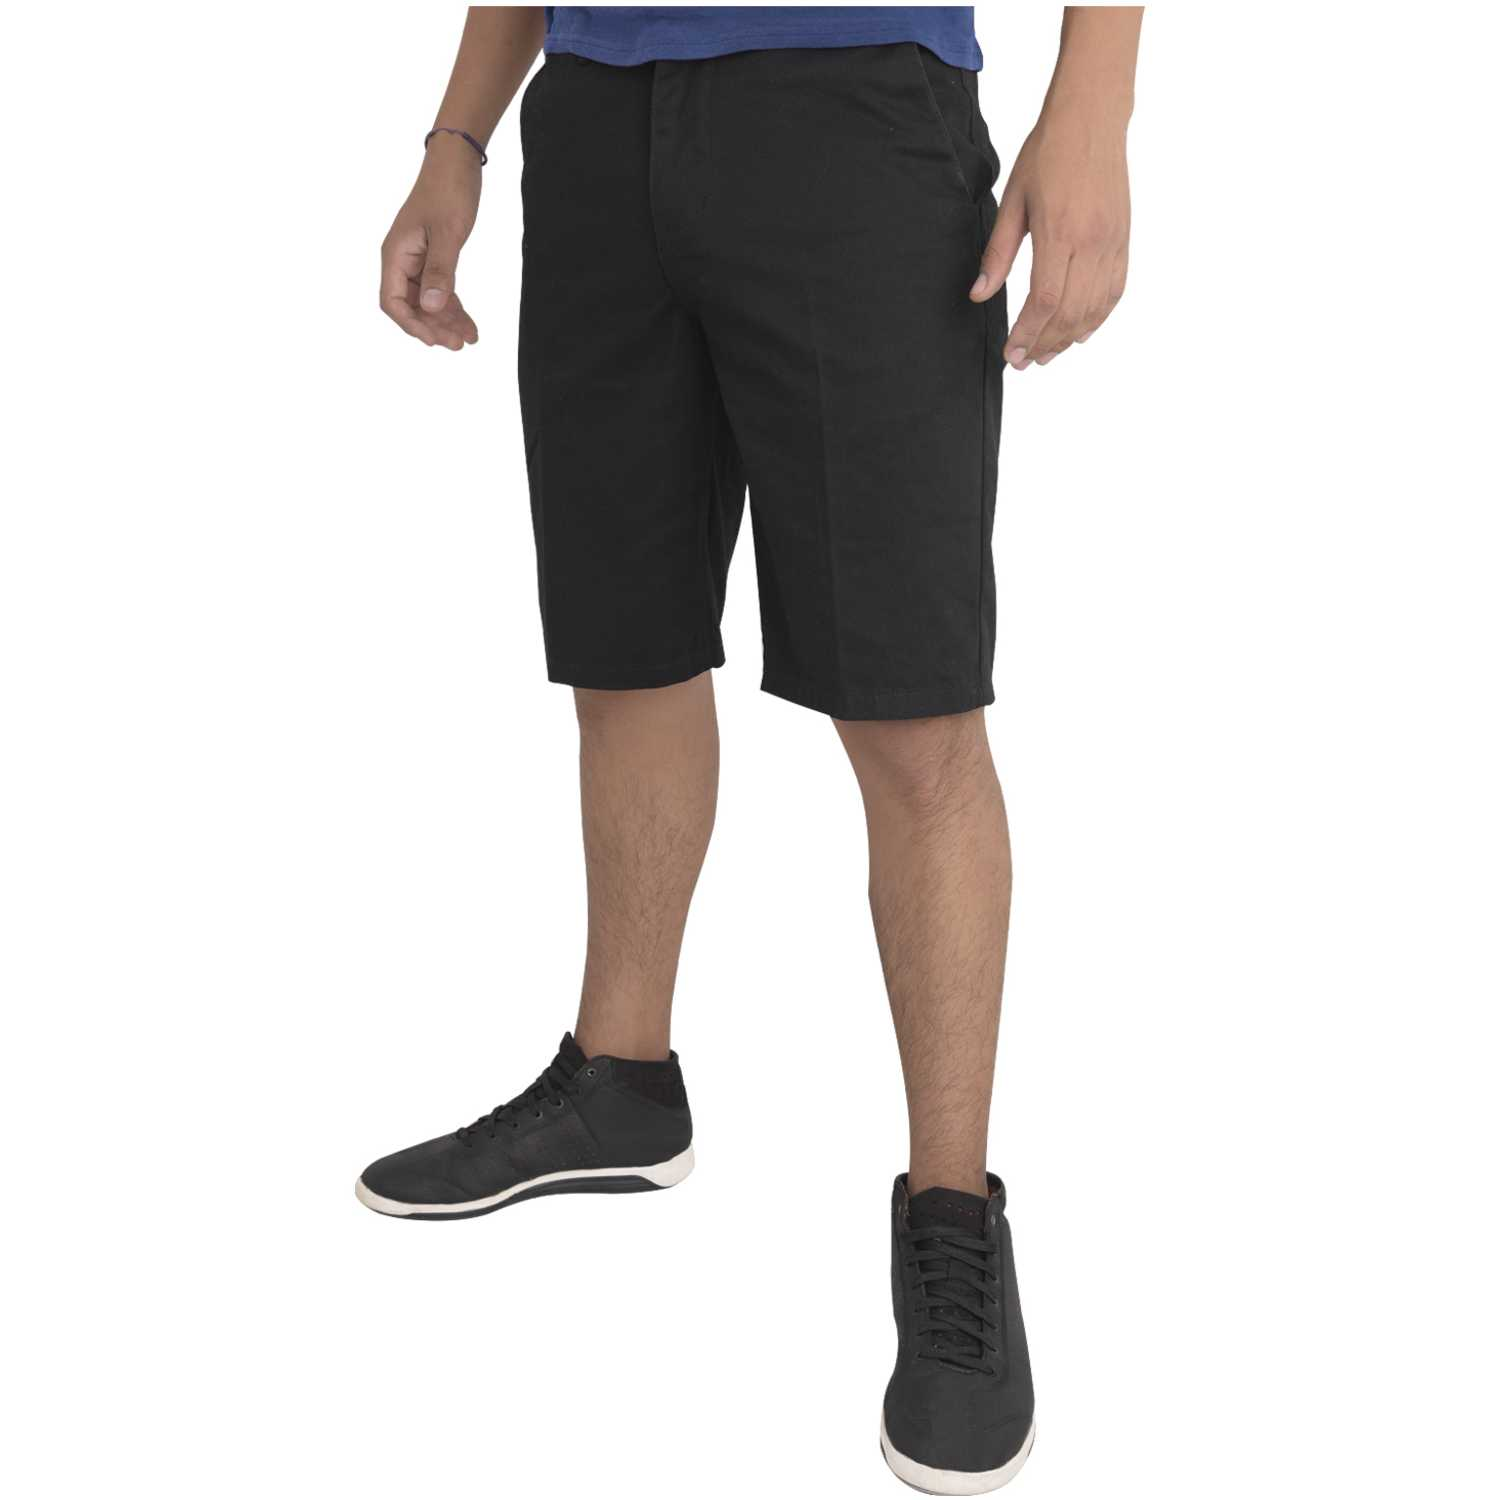 Casual de Hombre Hurley Negro one and only chino walkshort trsr